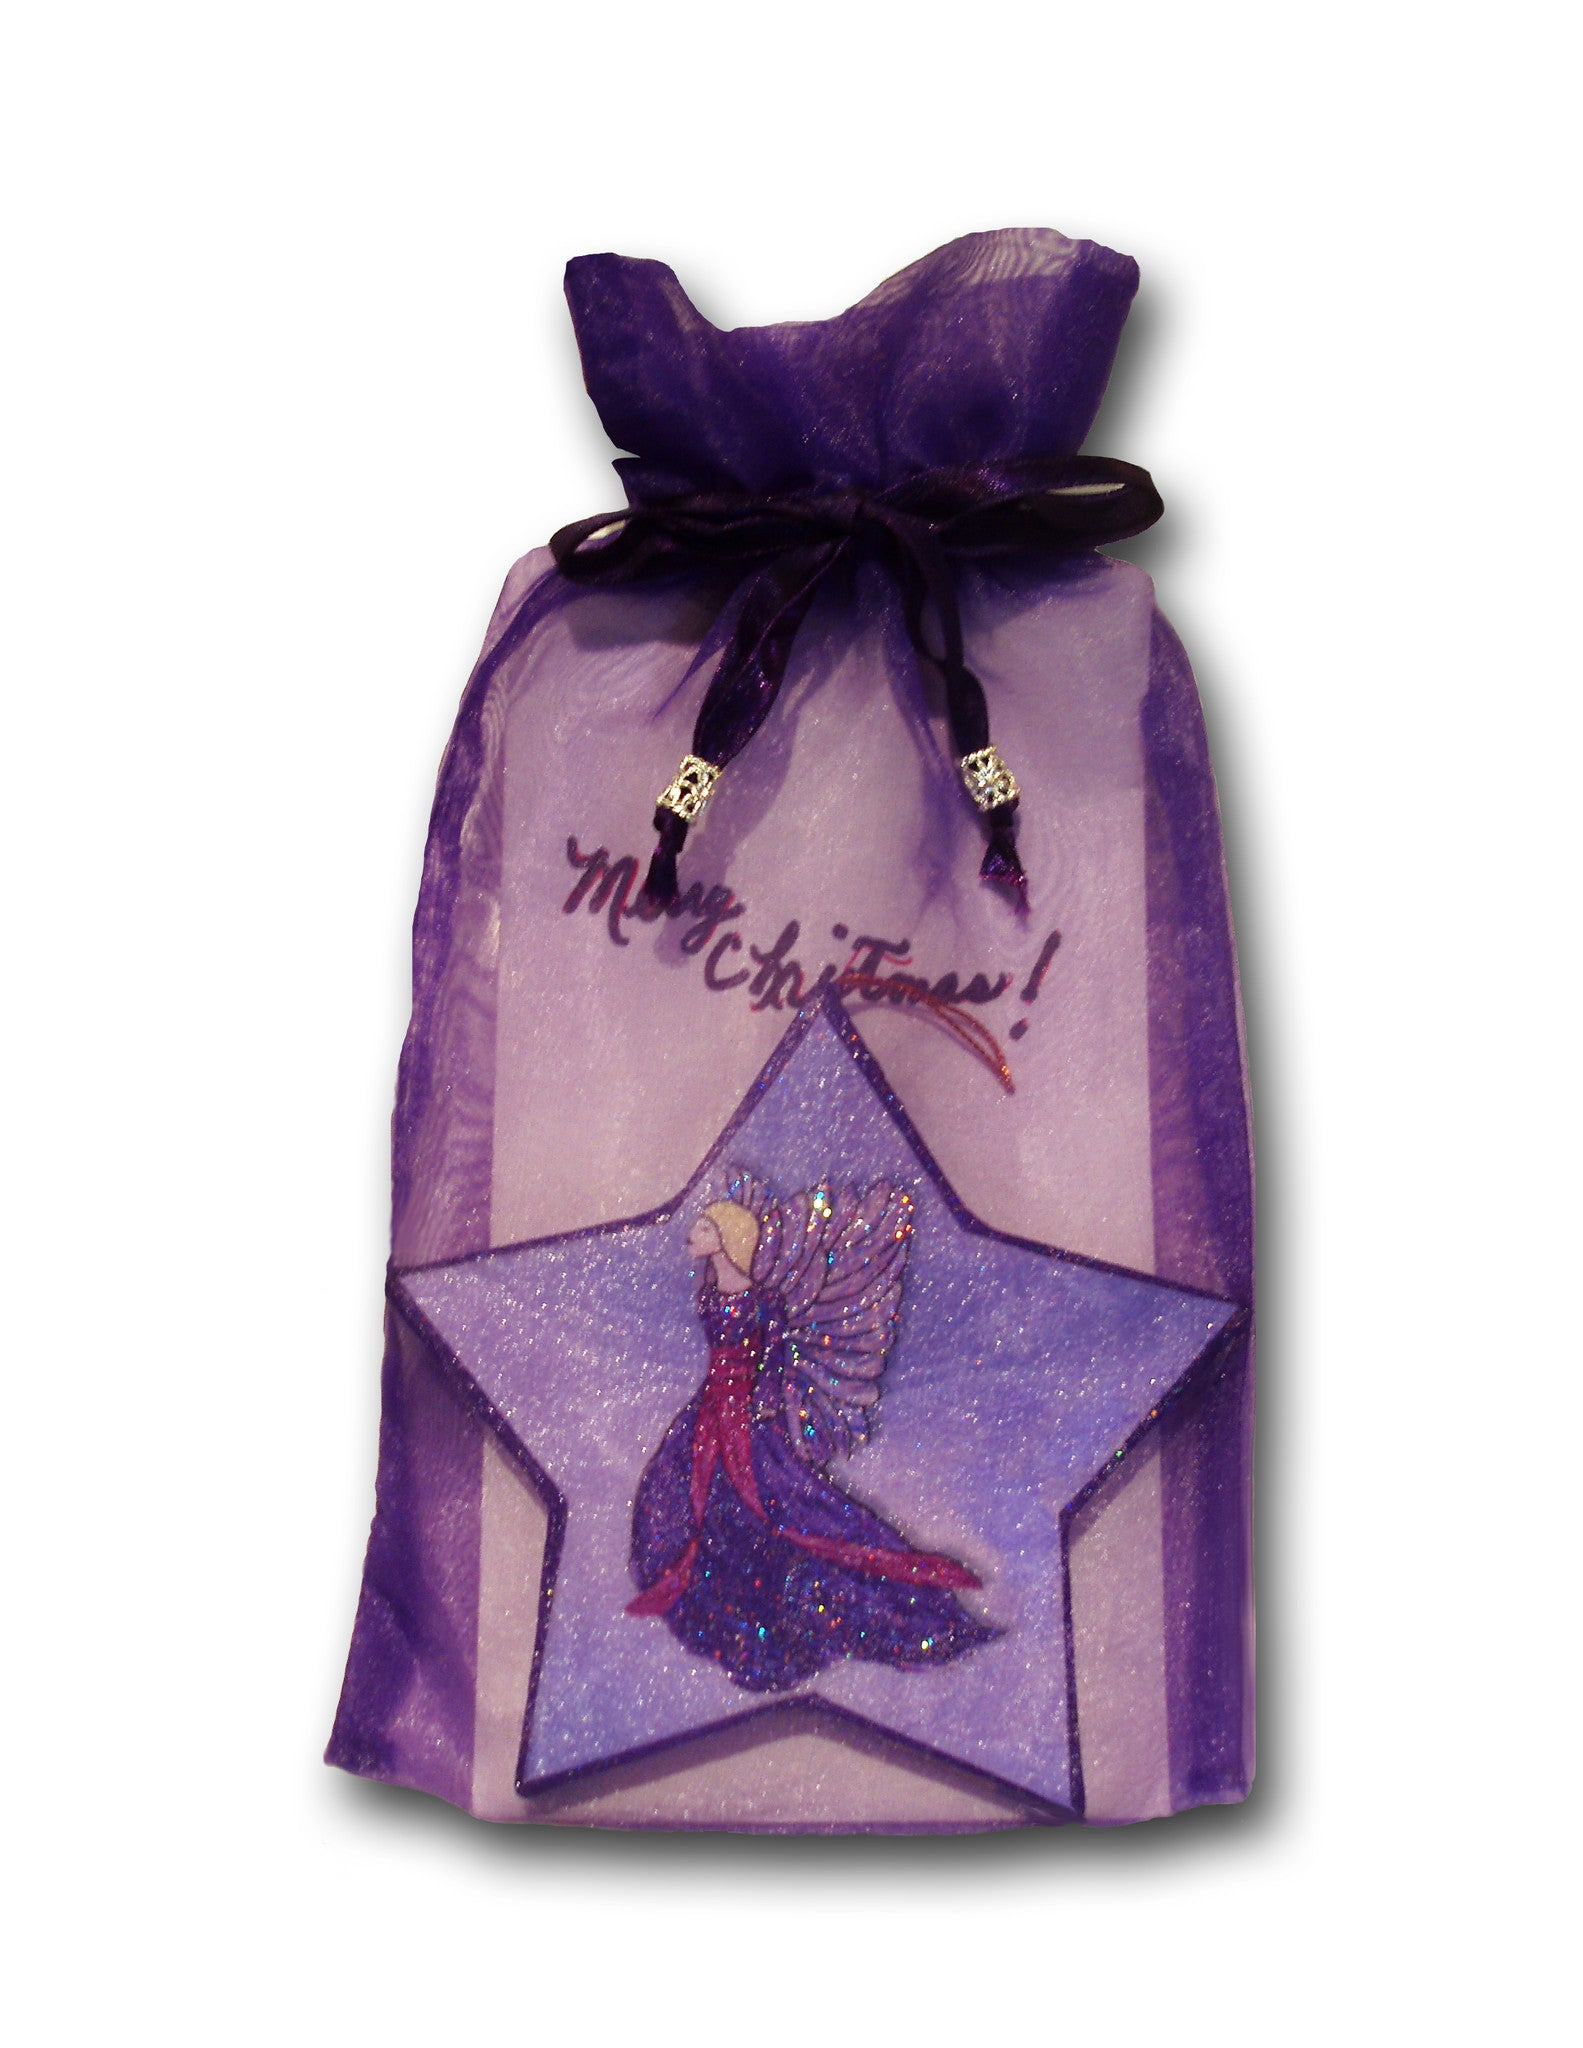 Star Angel Christmas Ornament - Christmas Gift - PurpleWishingGate.com